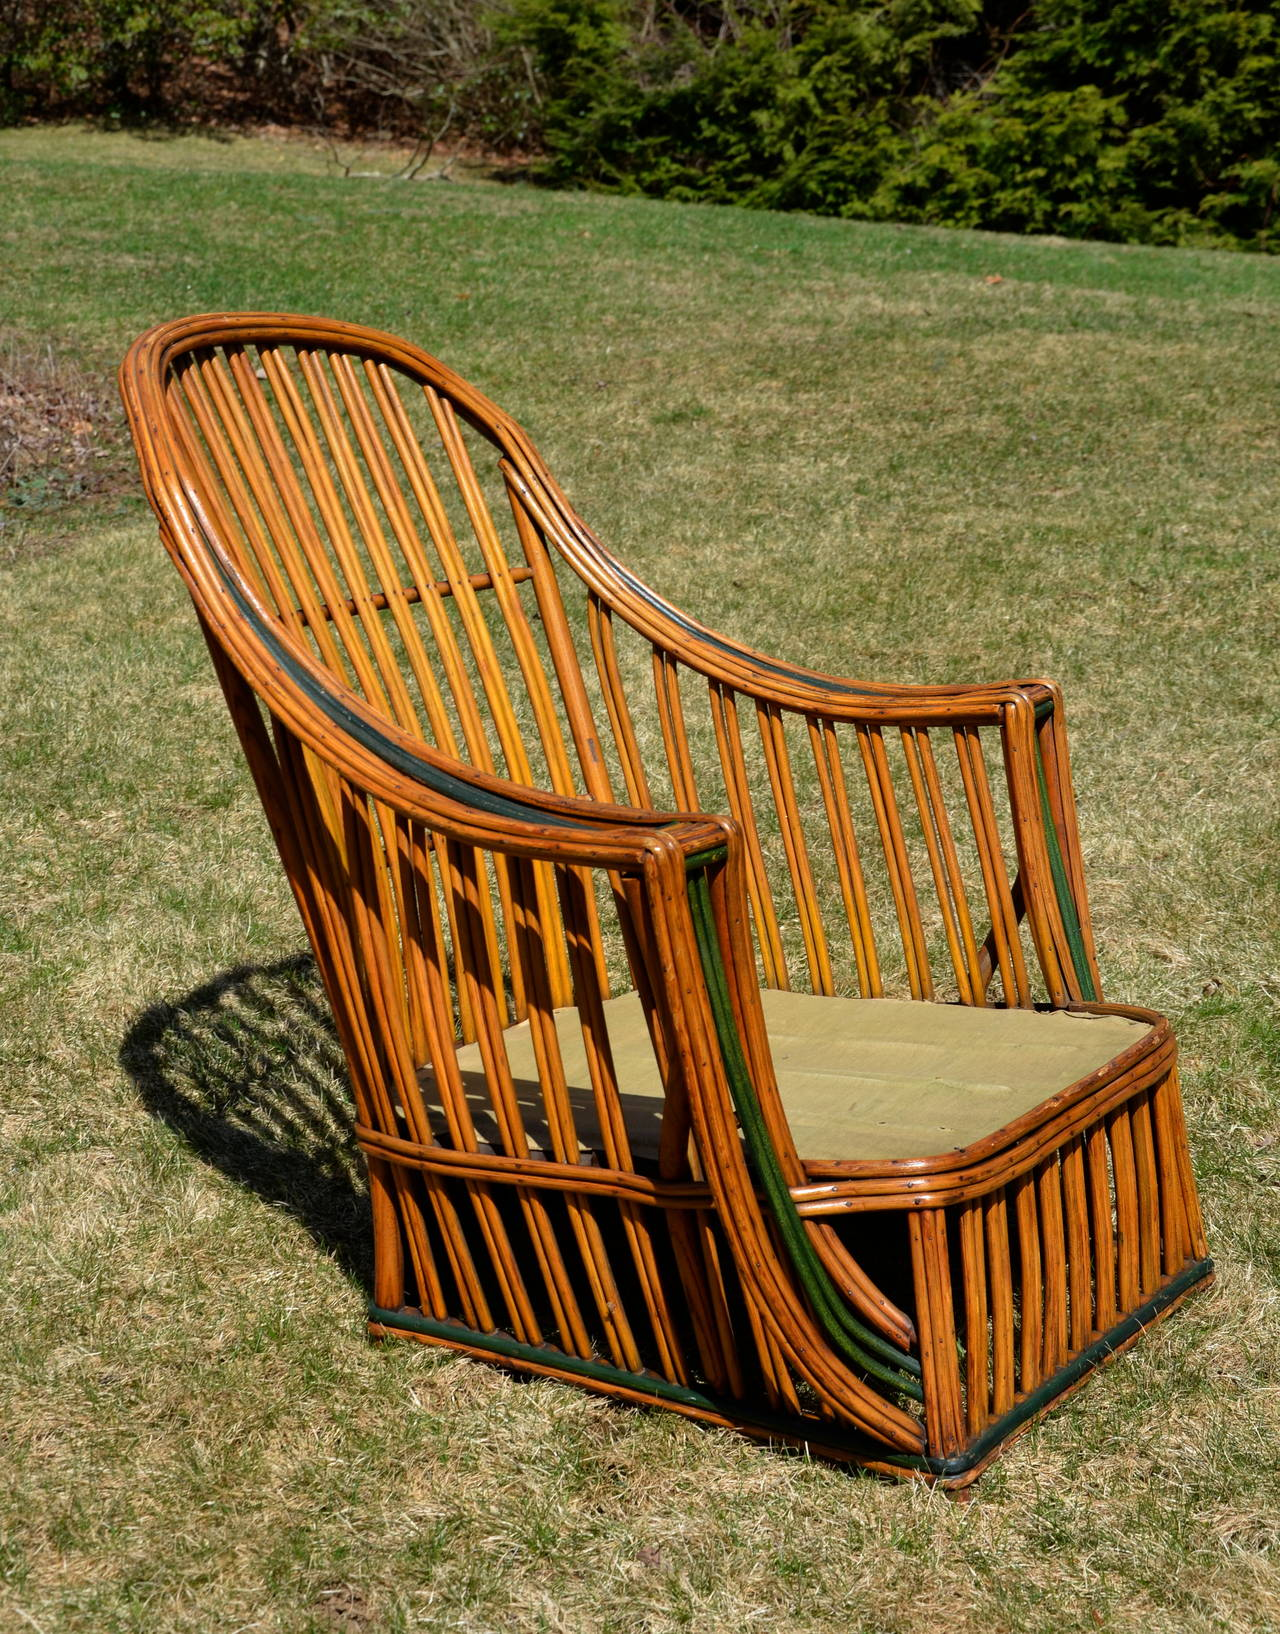 heywood wakefield wicker chairs pottery barn kids antique stick seating set at 1stdibs